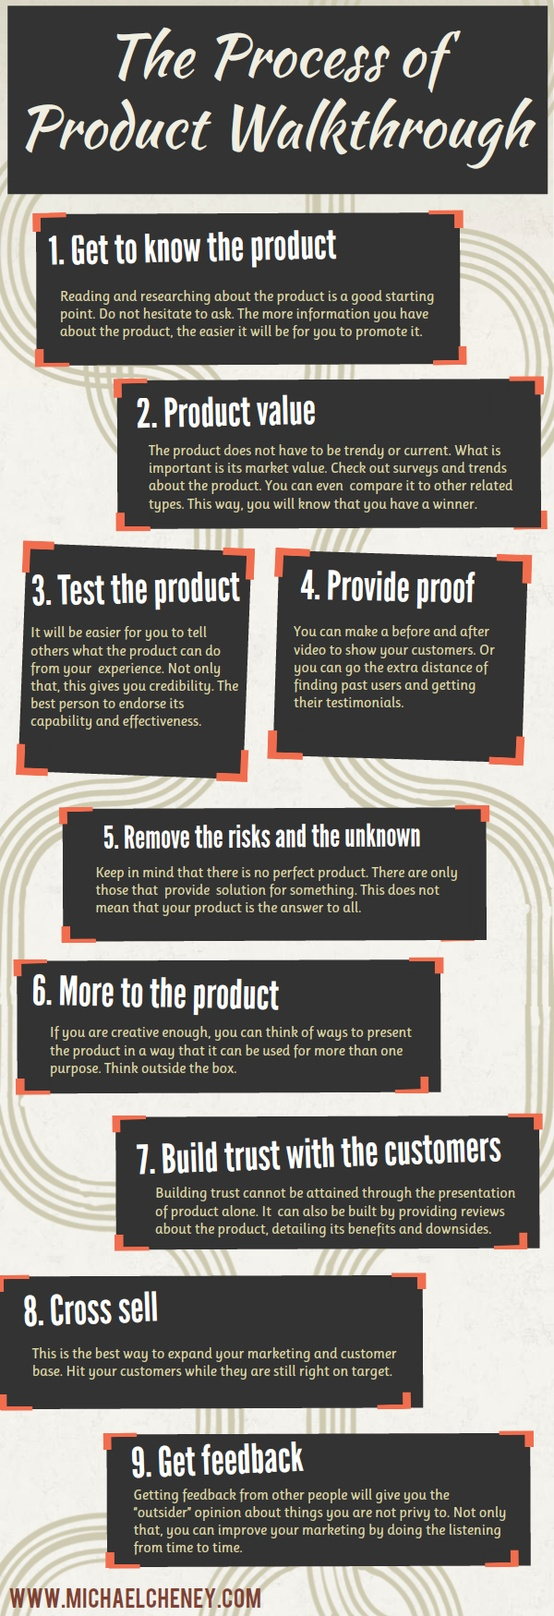 9 Steps To Promote a Product